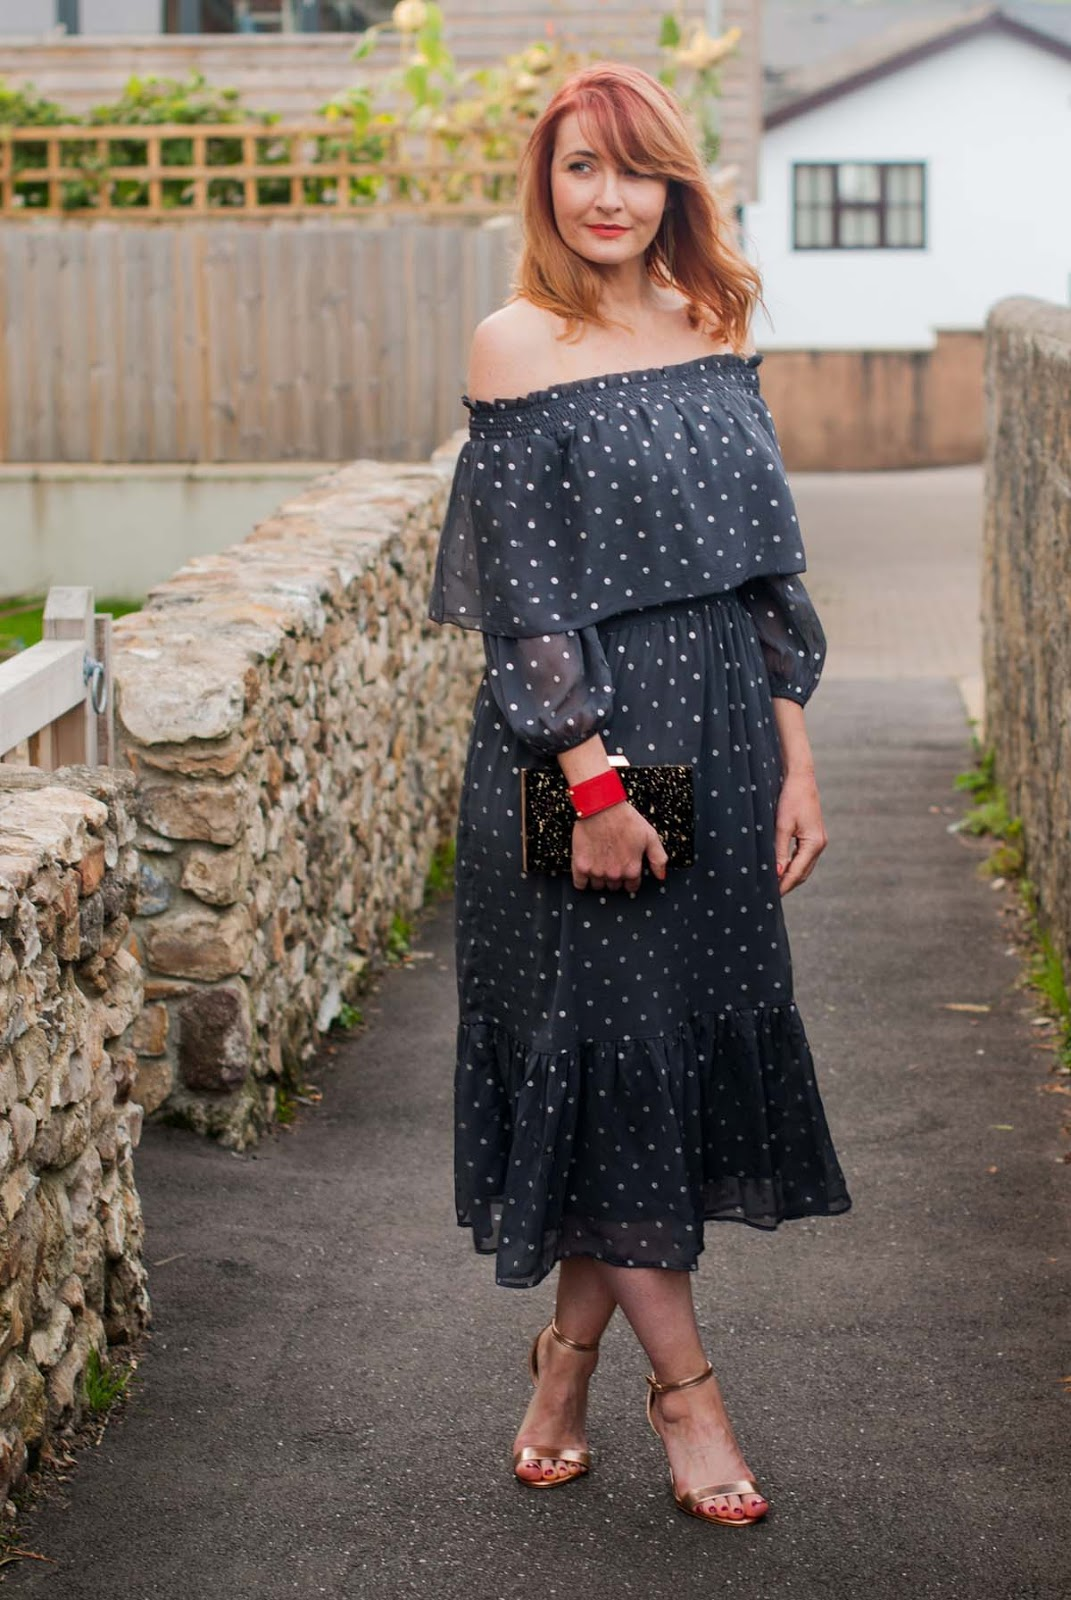 Christmas party dress: Grey off the shoulder ruffled midi dress with silver polka dots | Not Dressed As Lamb, over 40 style